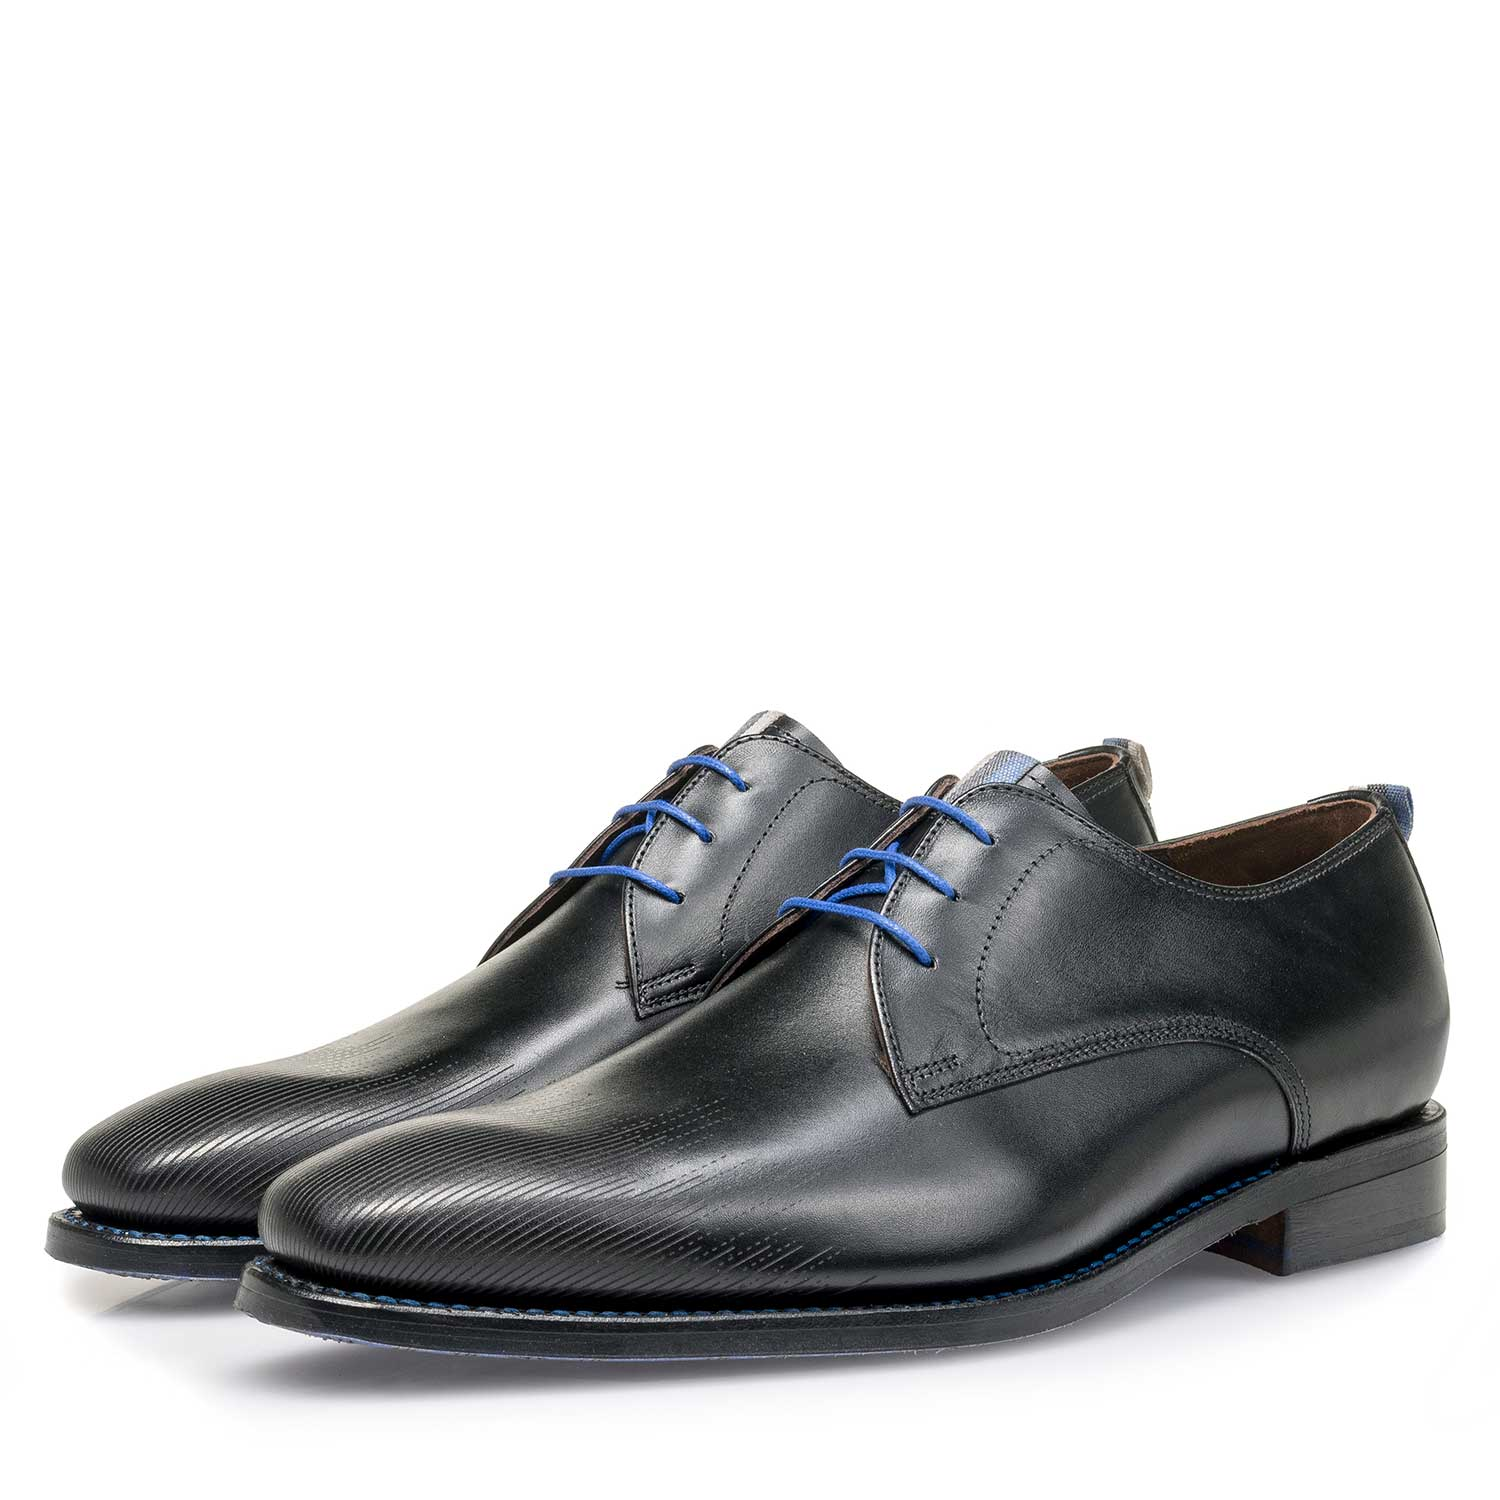 18084/03 - Black calf leather lace shoe